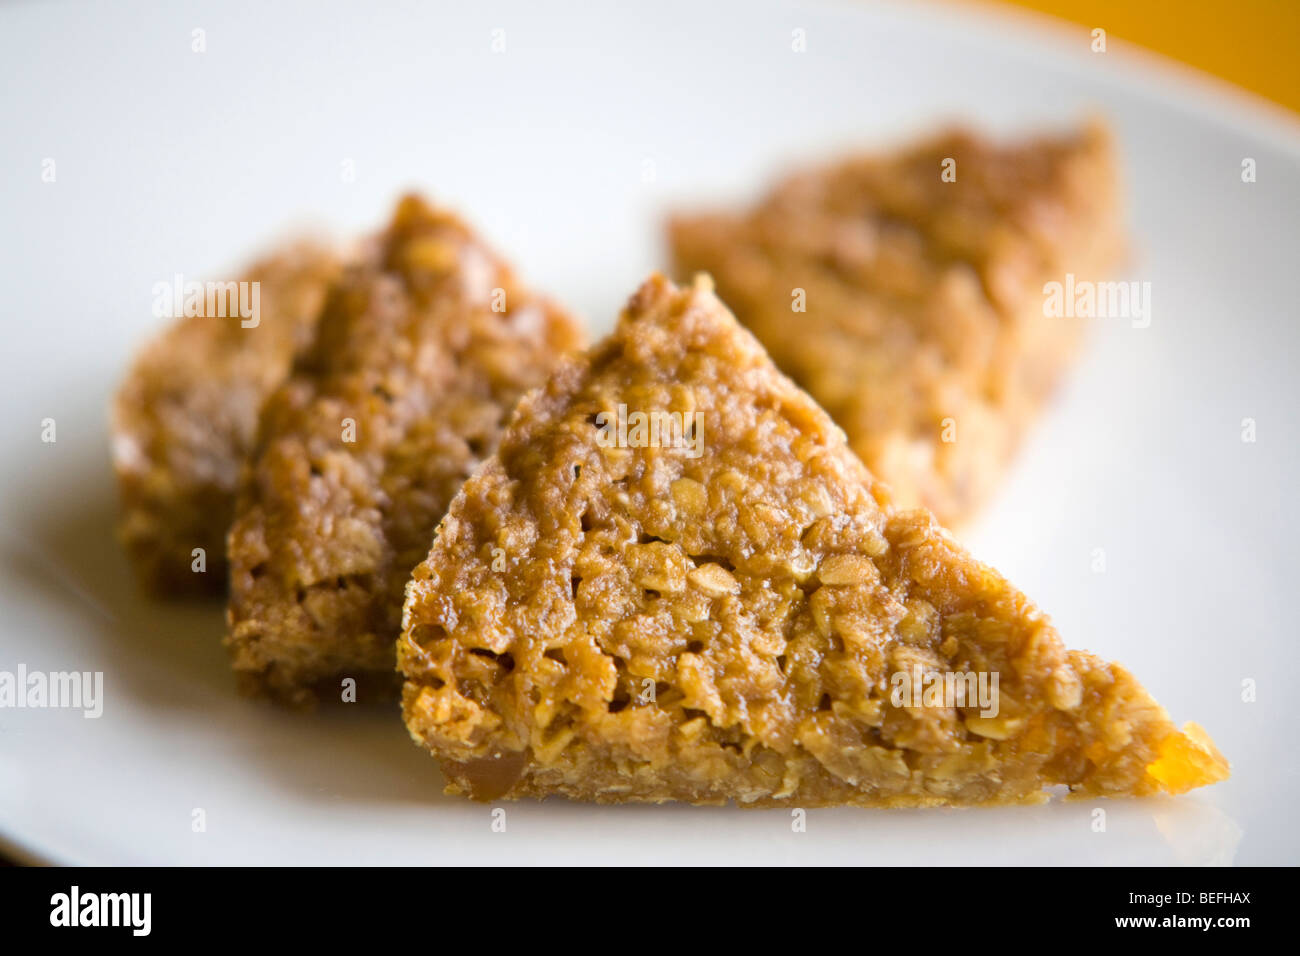 A flap jack on a plate - Stock Image